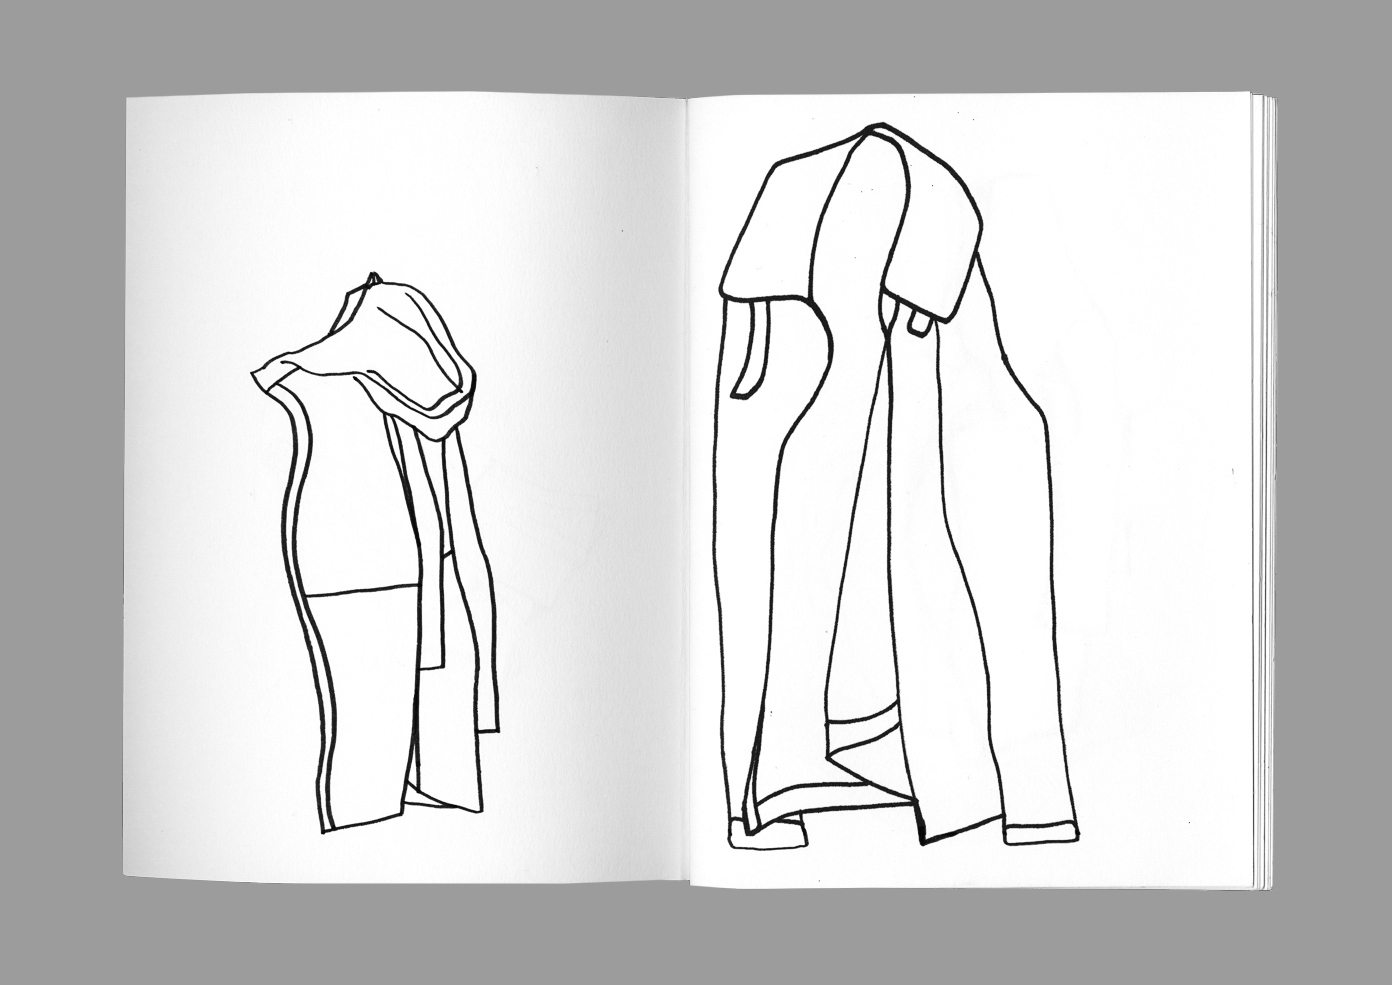 coats_sketch_03 copy